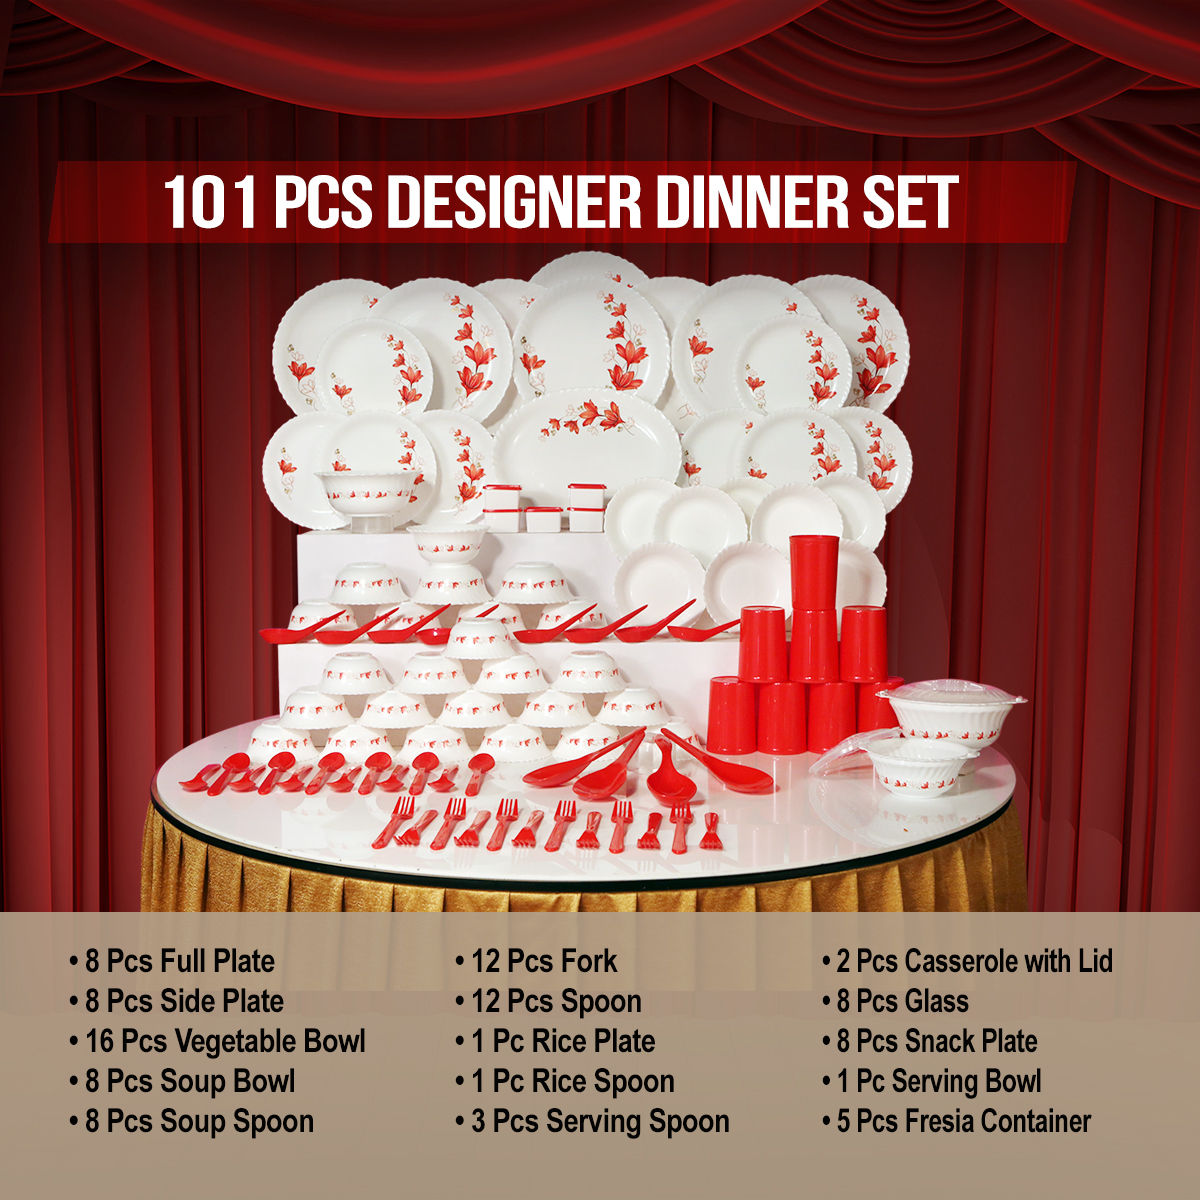 Buy 101 Pcs Designer Dinner Set Online At Best Price In India On